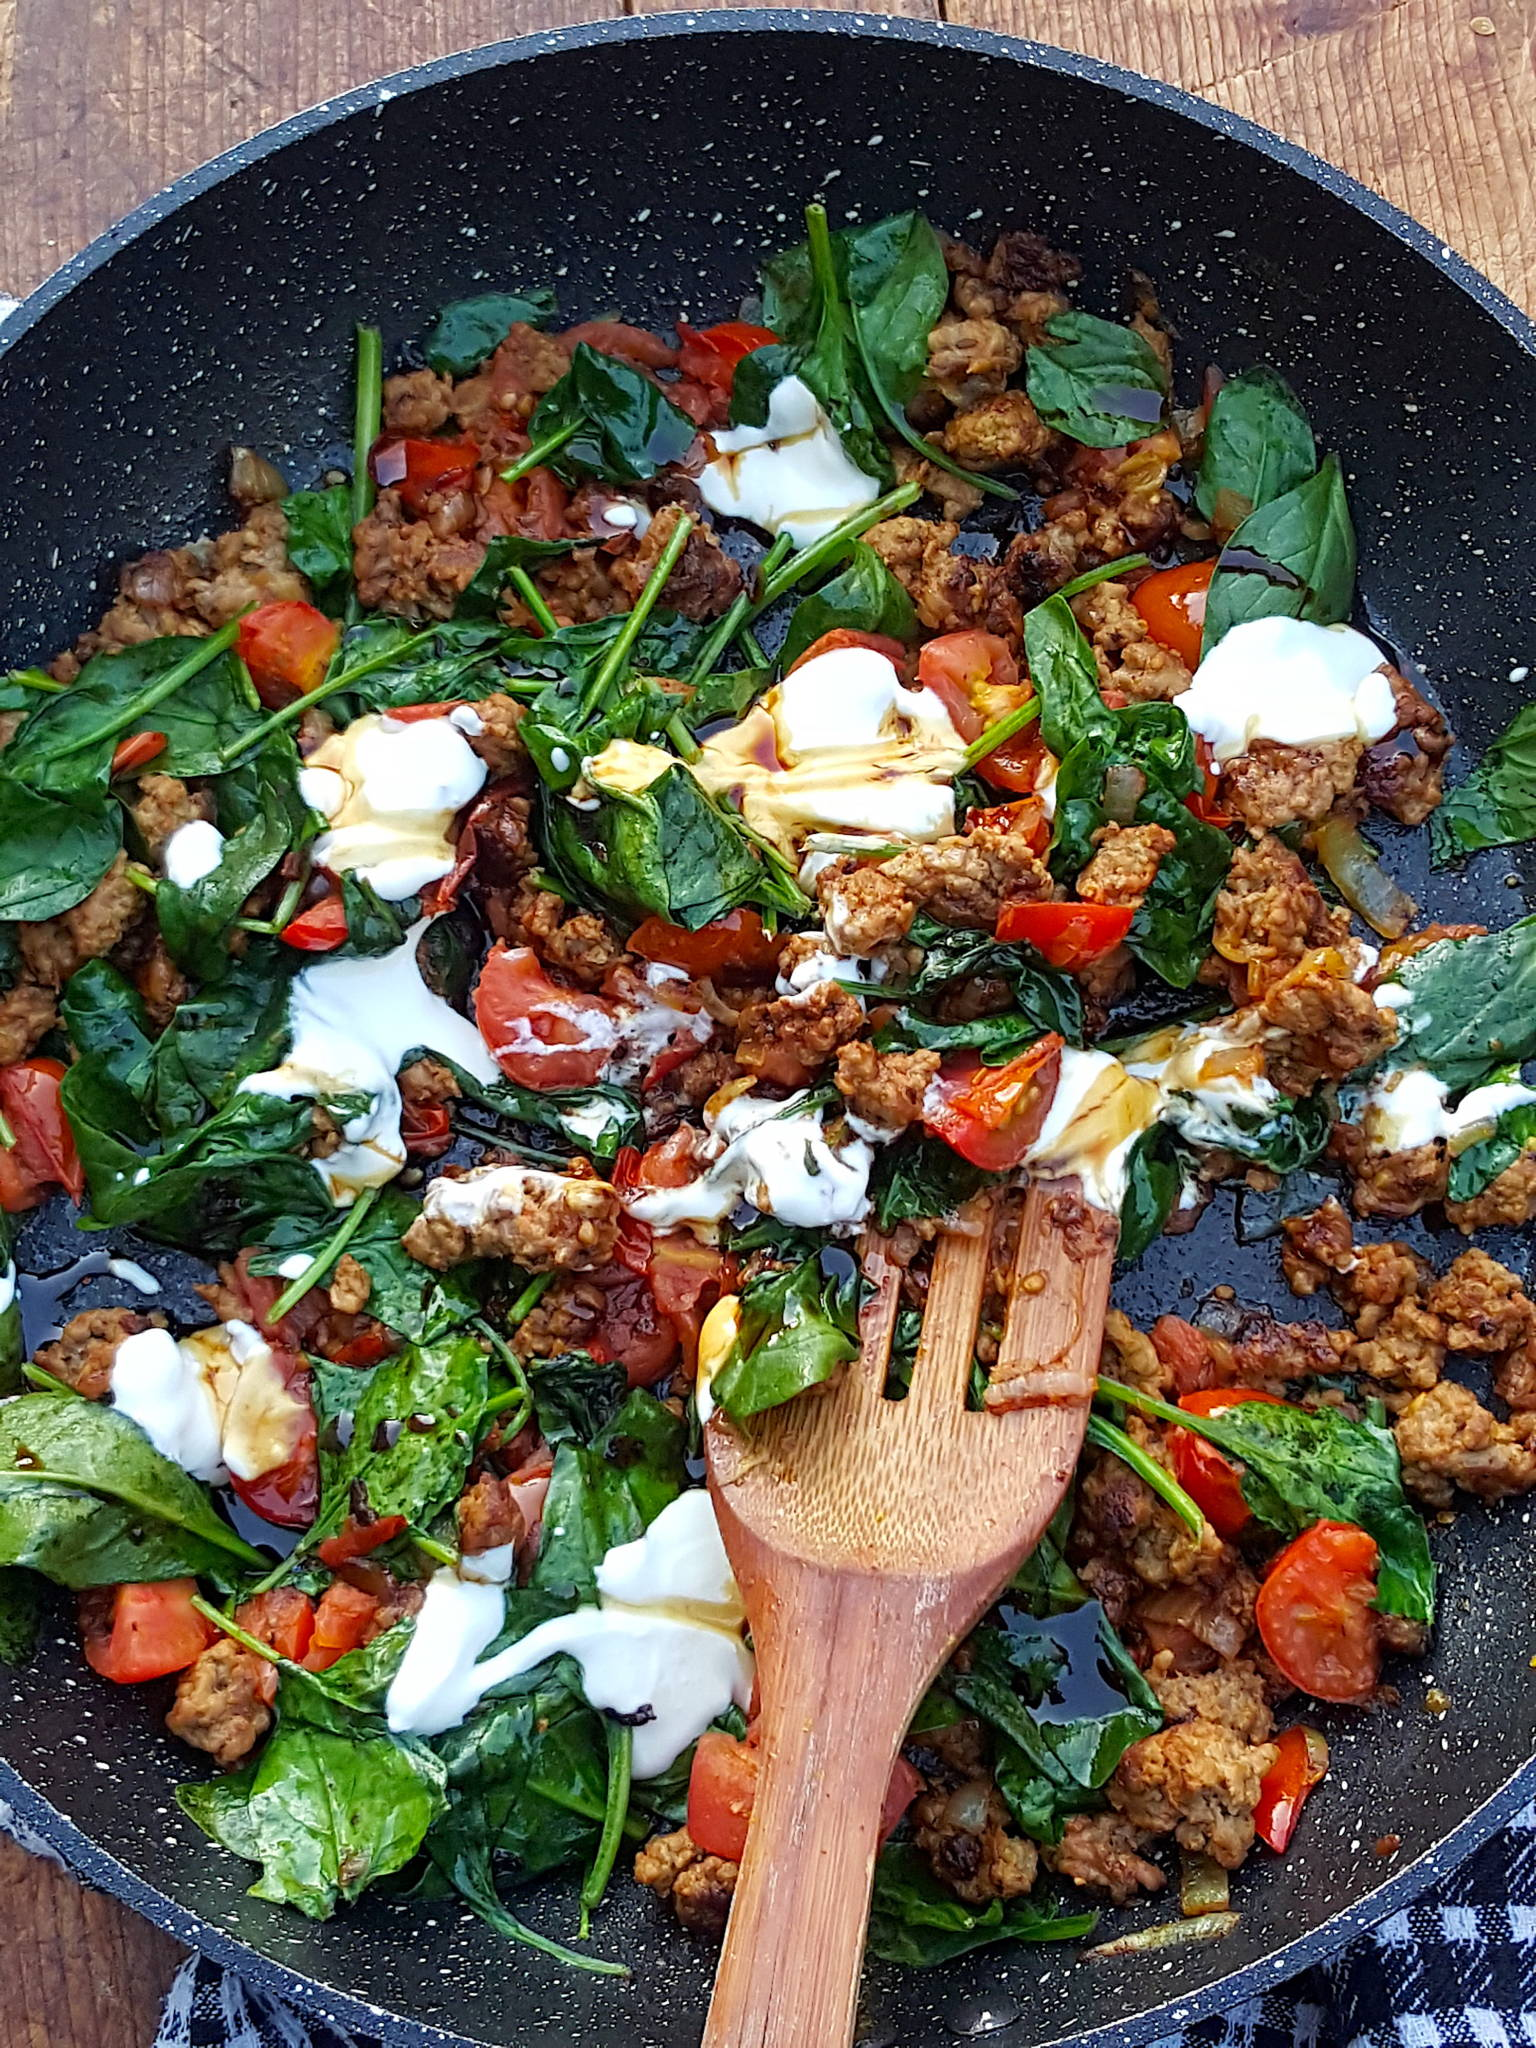 Lamb & Spinach in the Pan